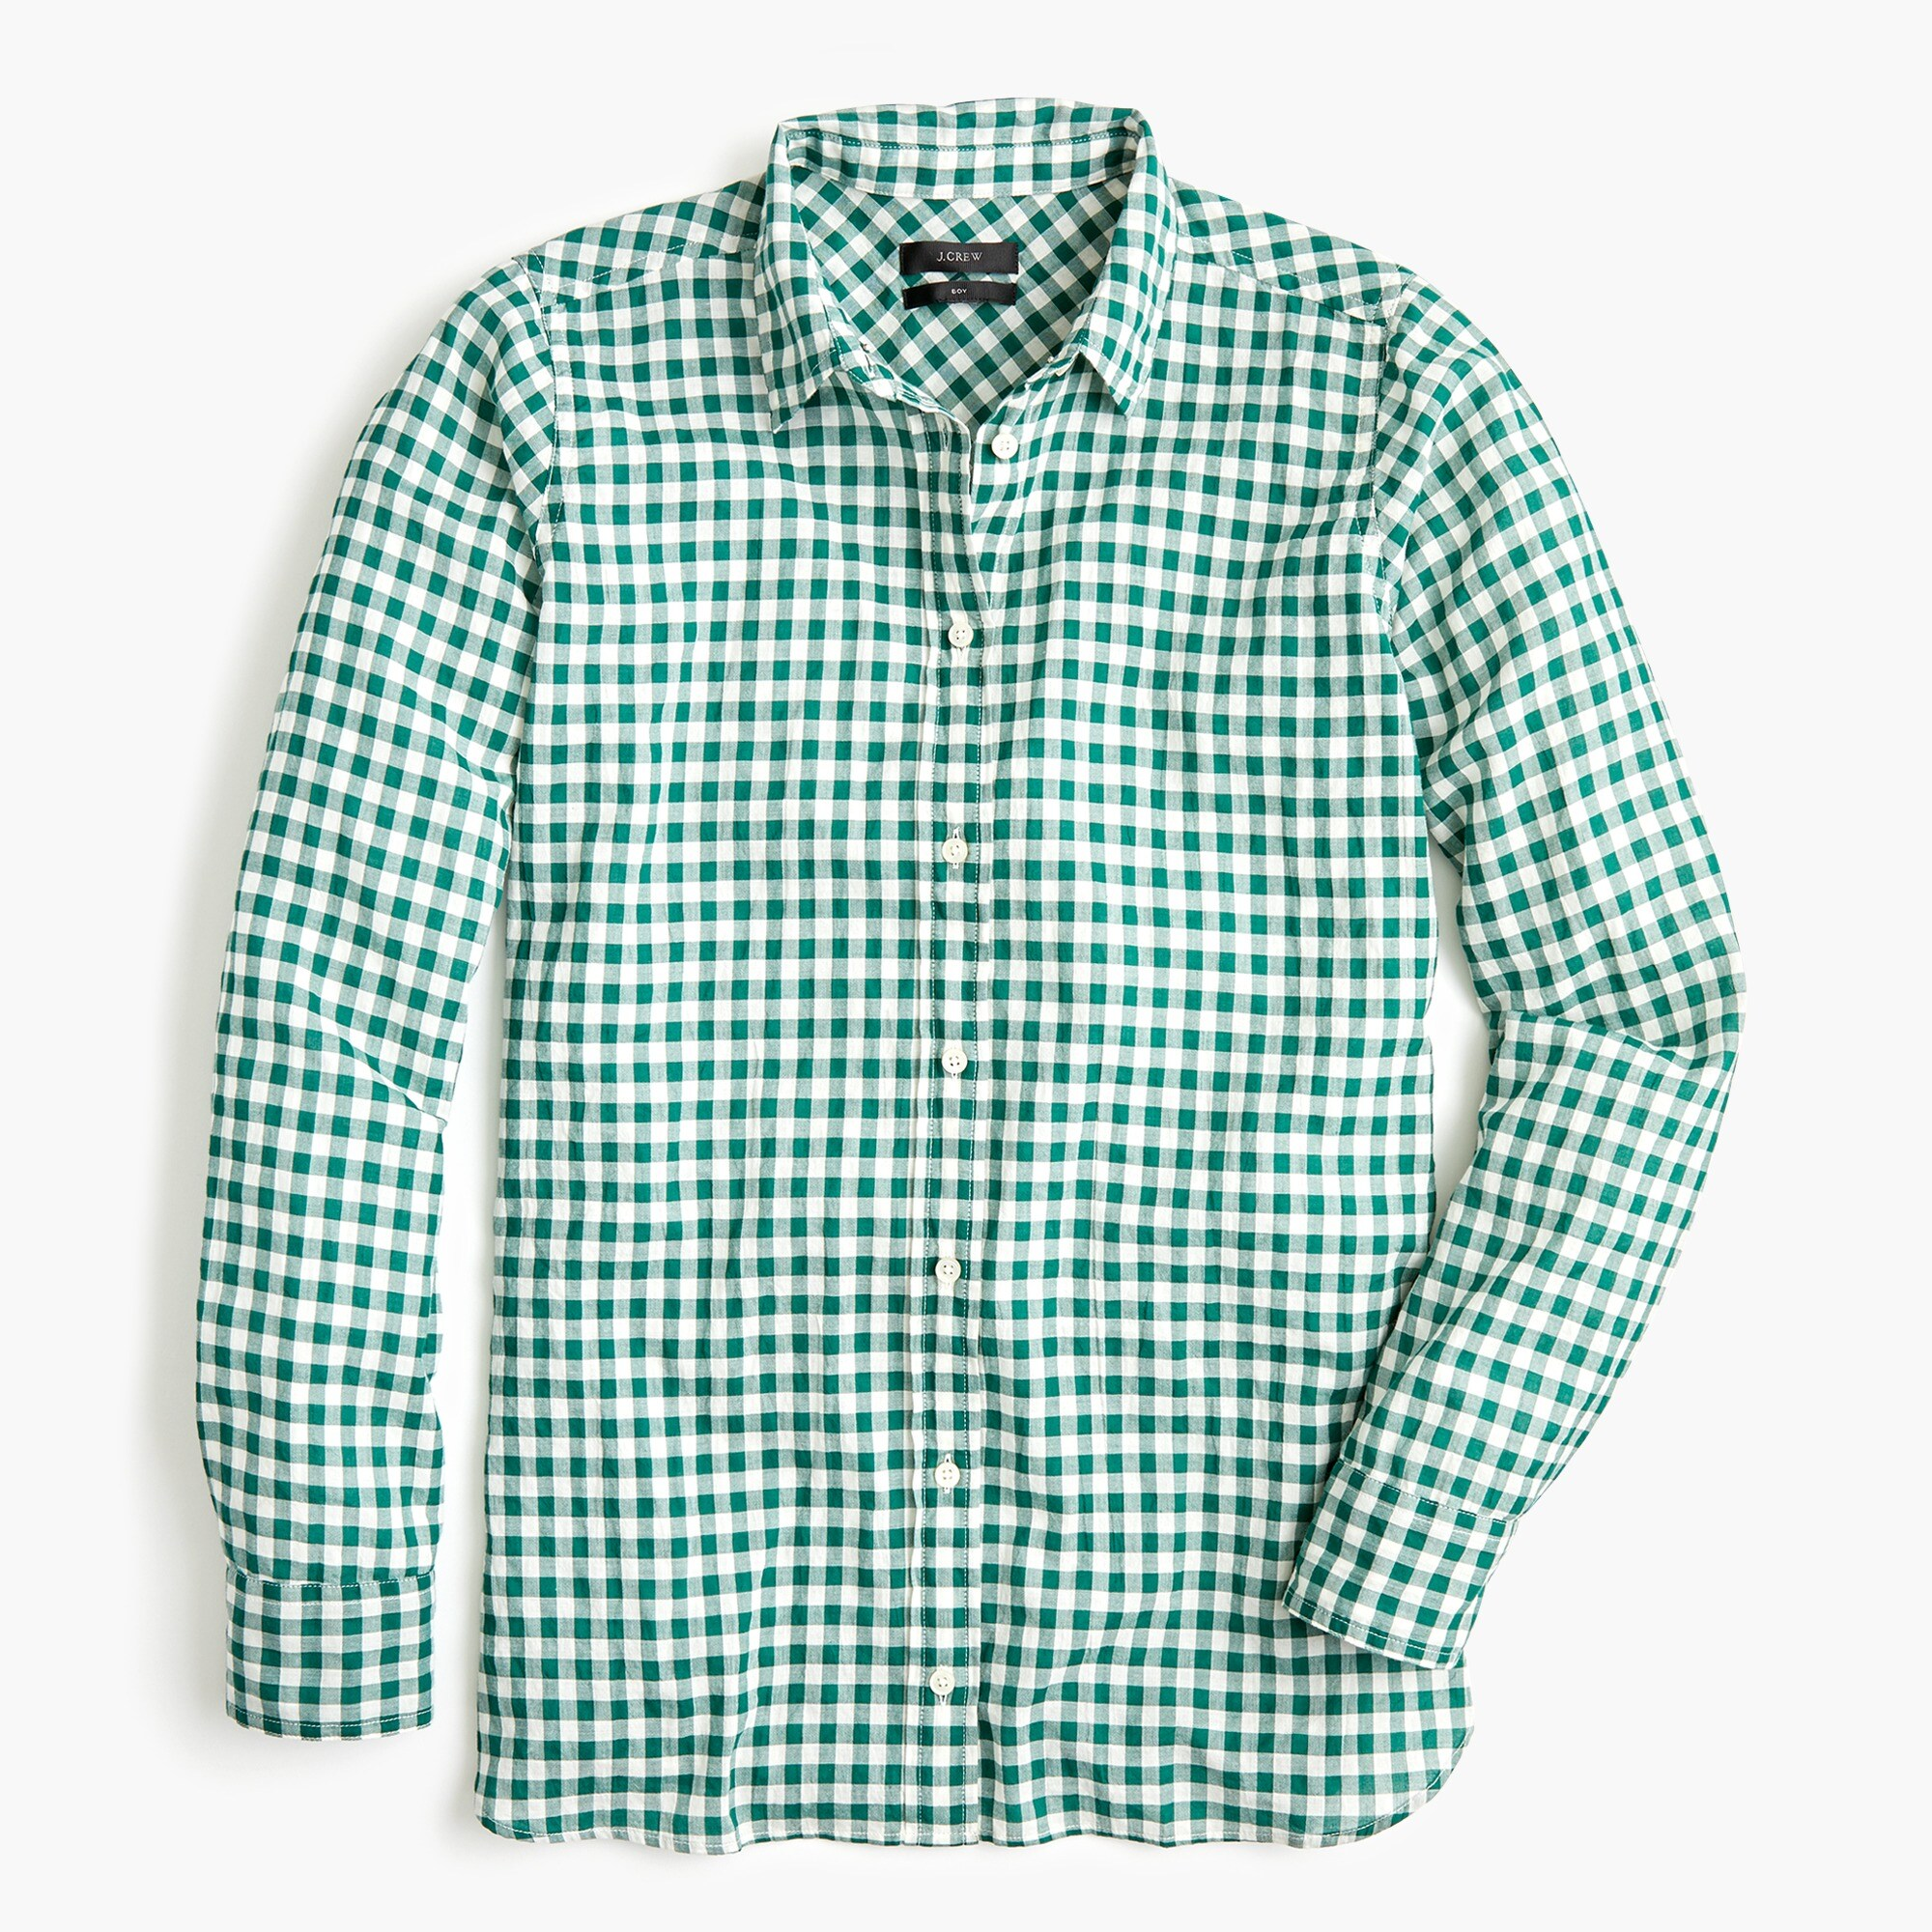 Image 8 for Classic-fit boy shirt in crinkle gingham